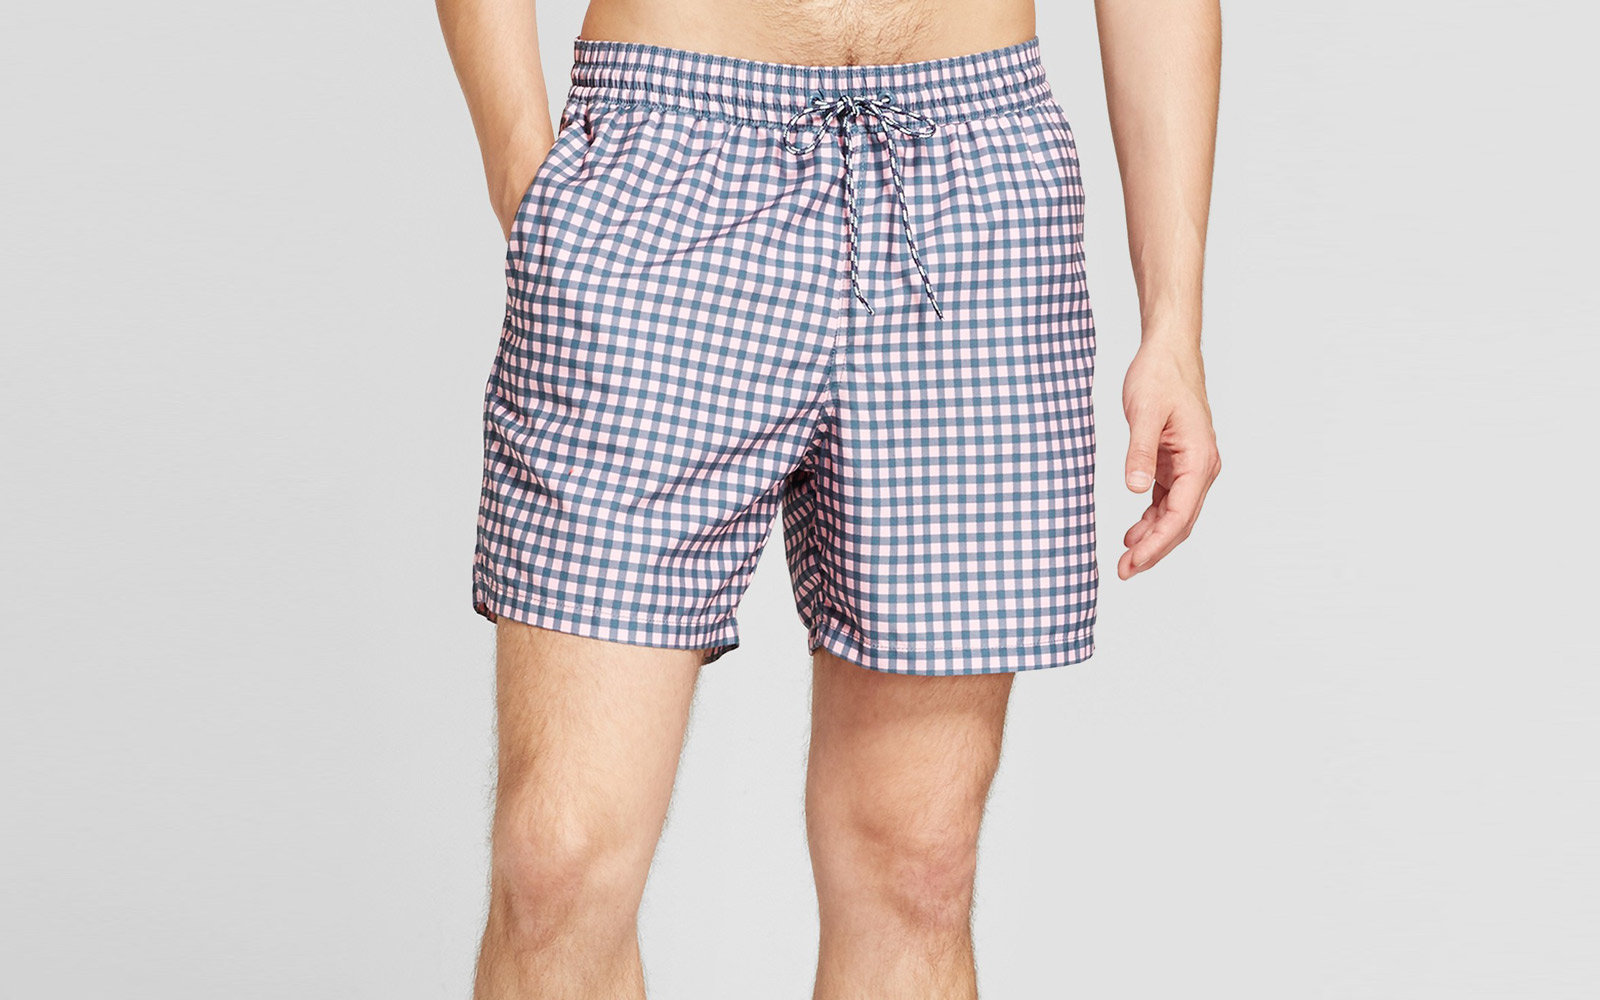 291a9a31839c1 The Best Men's Swim Trunks to Pack for the Beach | Travel + Leisure